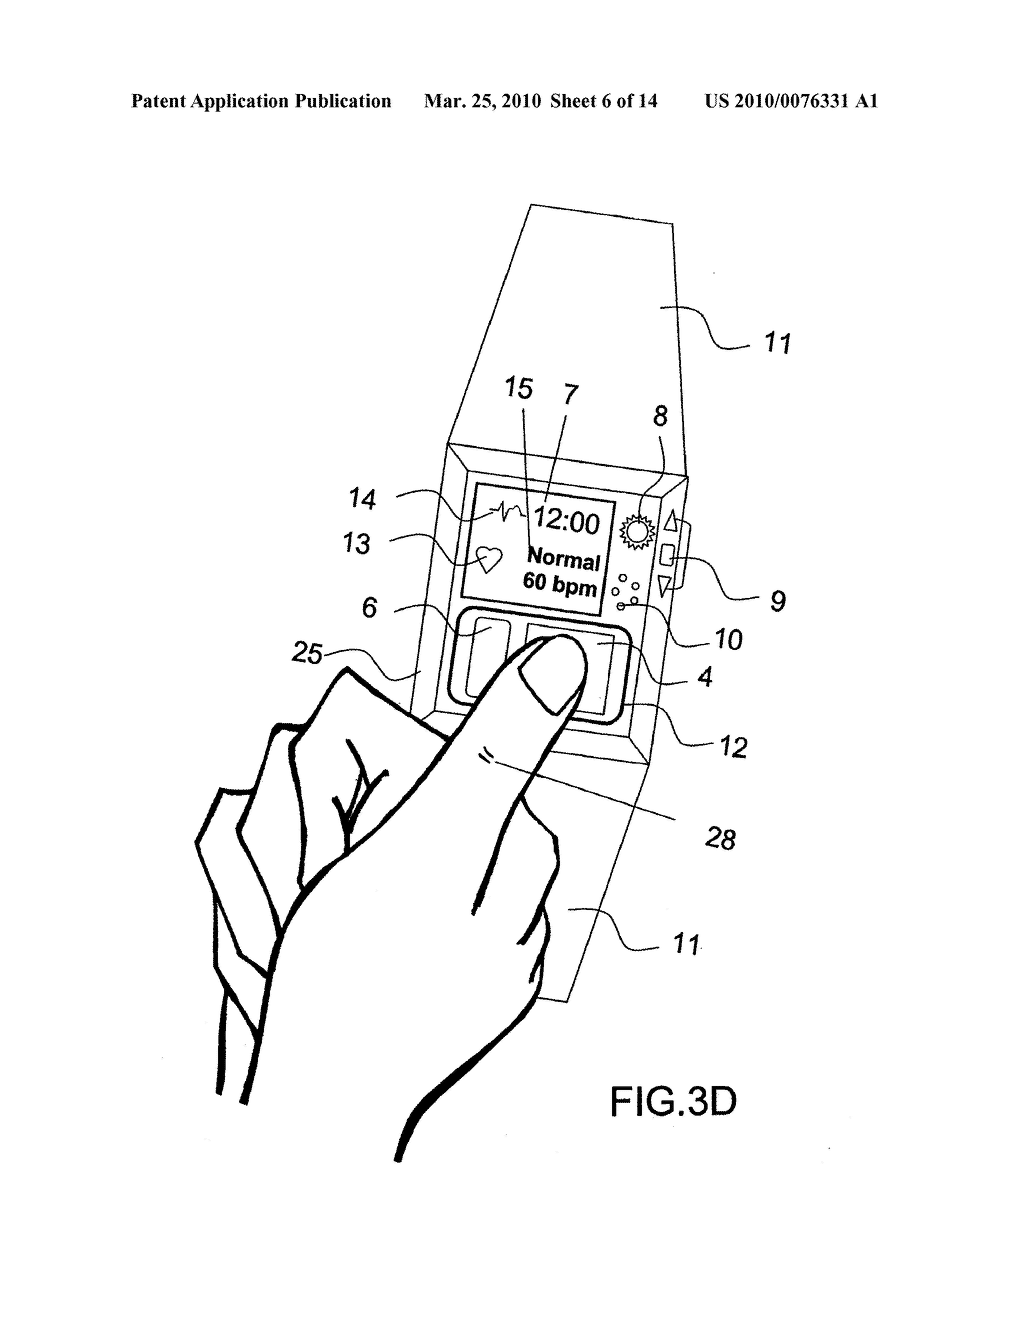 1024x1320 Device And Method For Measuring Three Lead Ecg In A Wristwatch